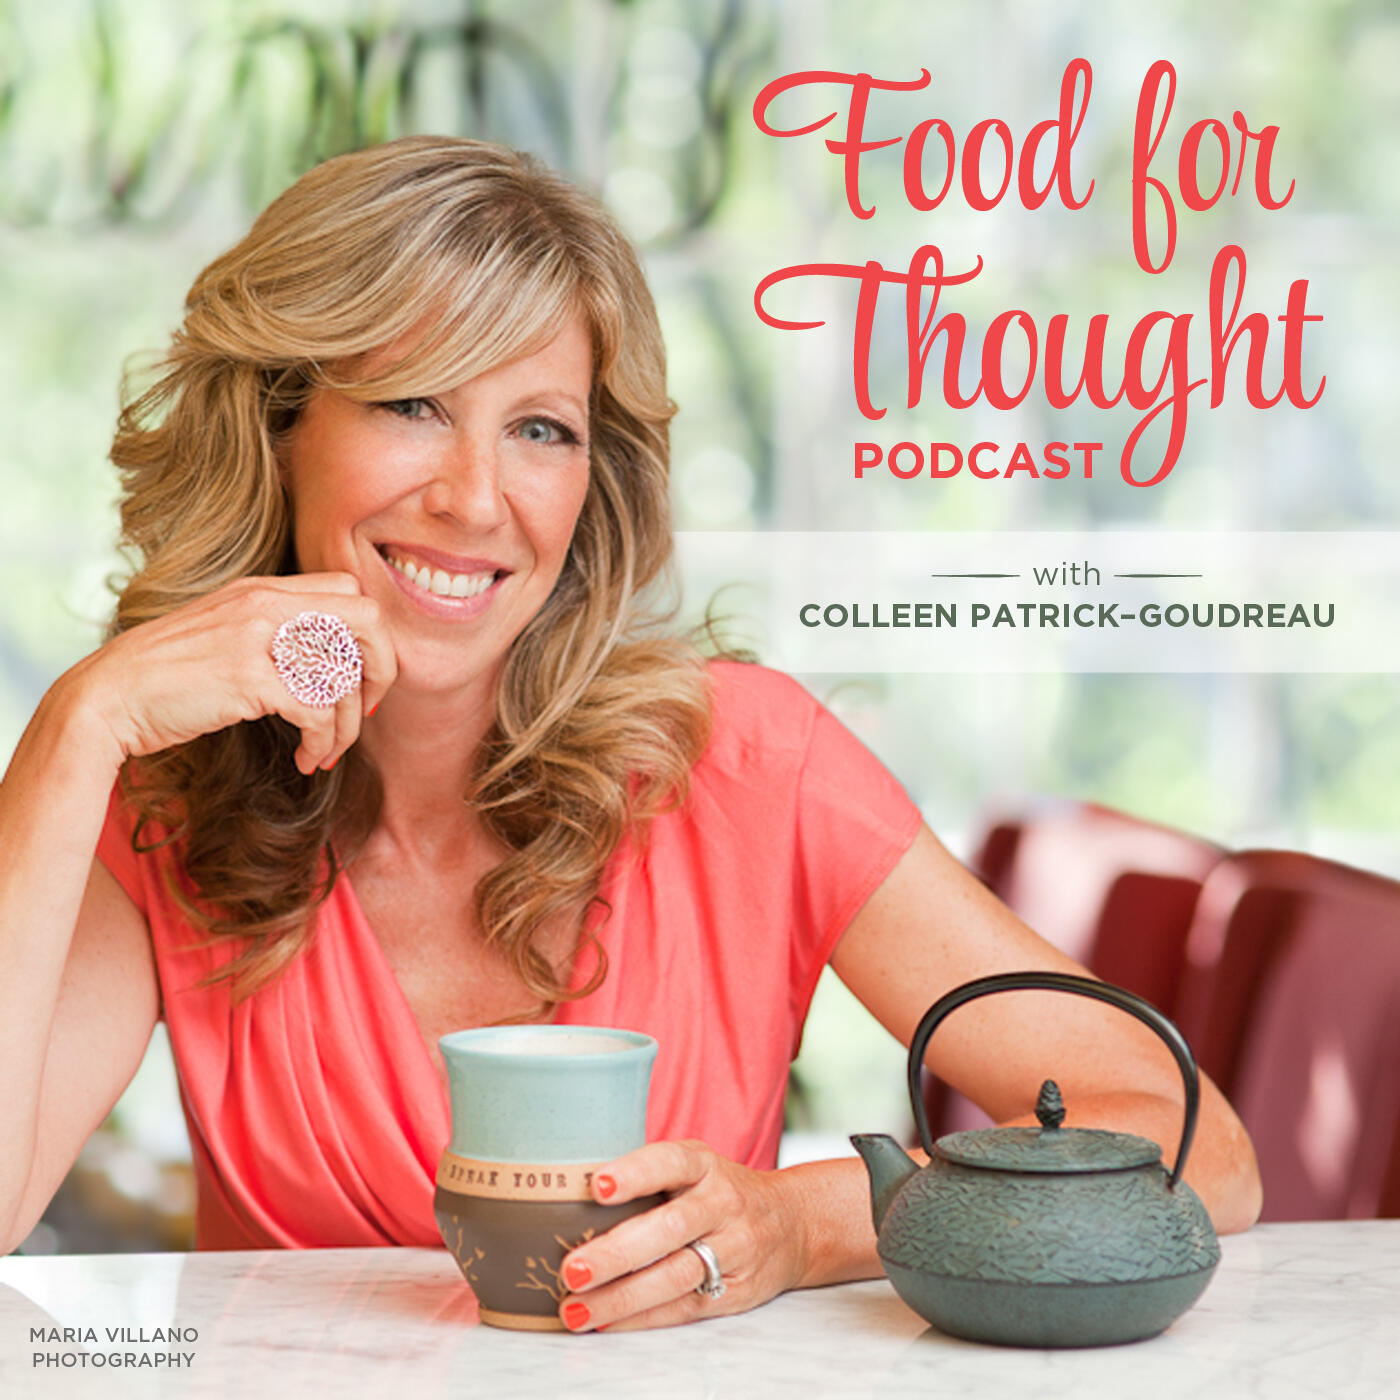 Food for Thought: How to Live Compassionately and Healthfully